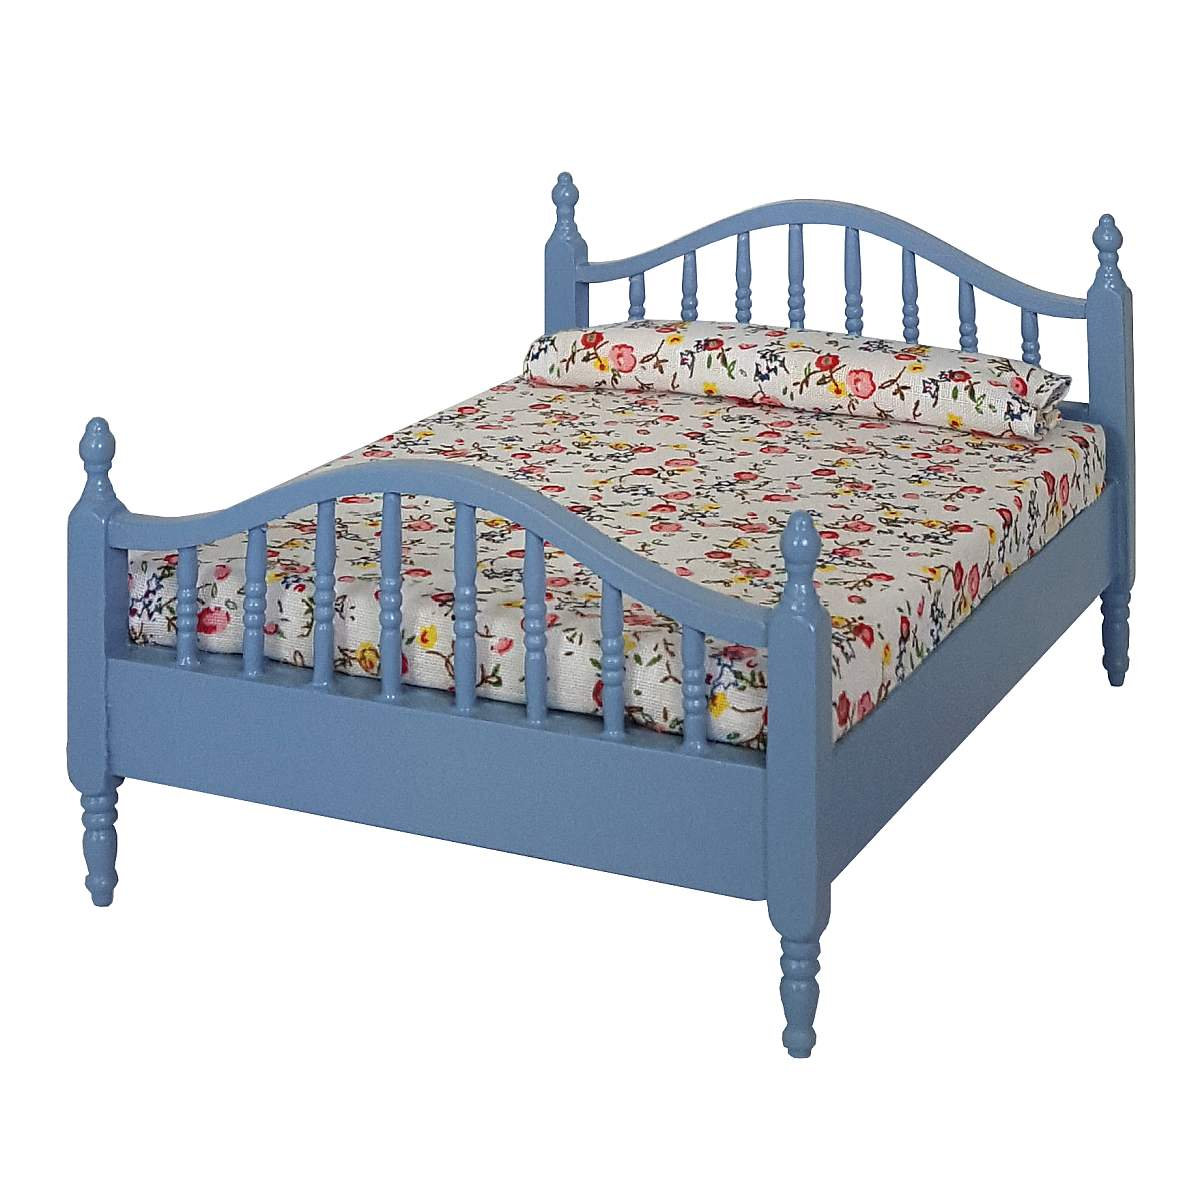 Double bed, blue